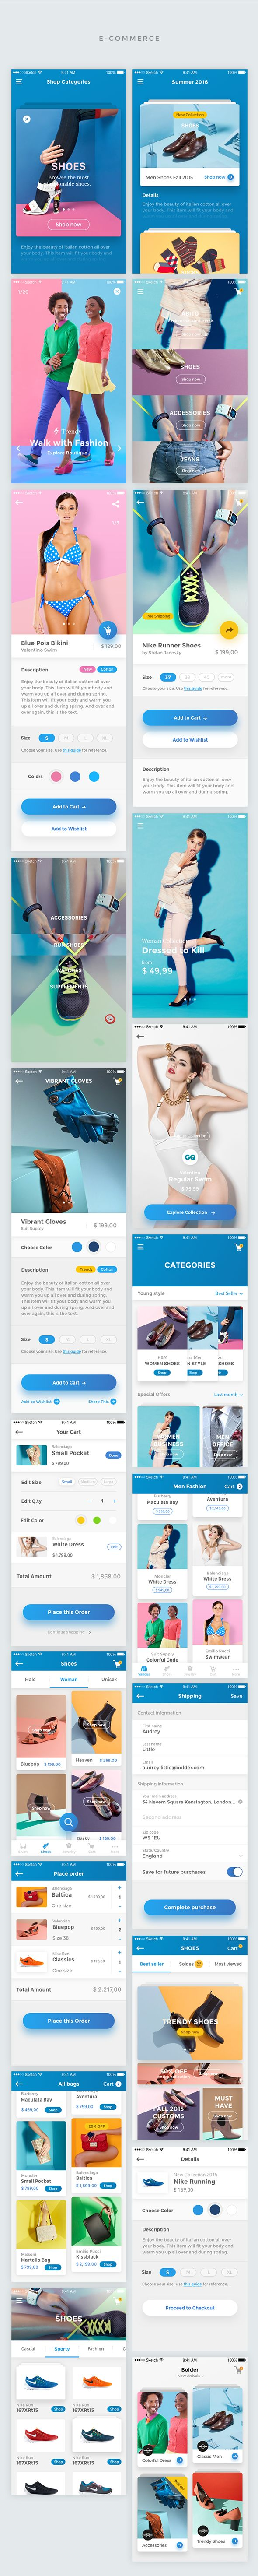 Bolder – Multipurpose Mobile UI KIT for Sketch on